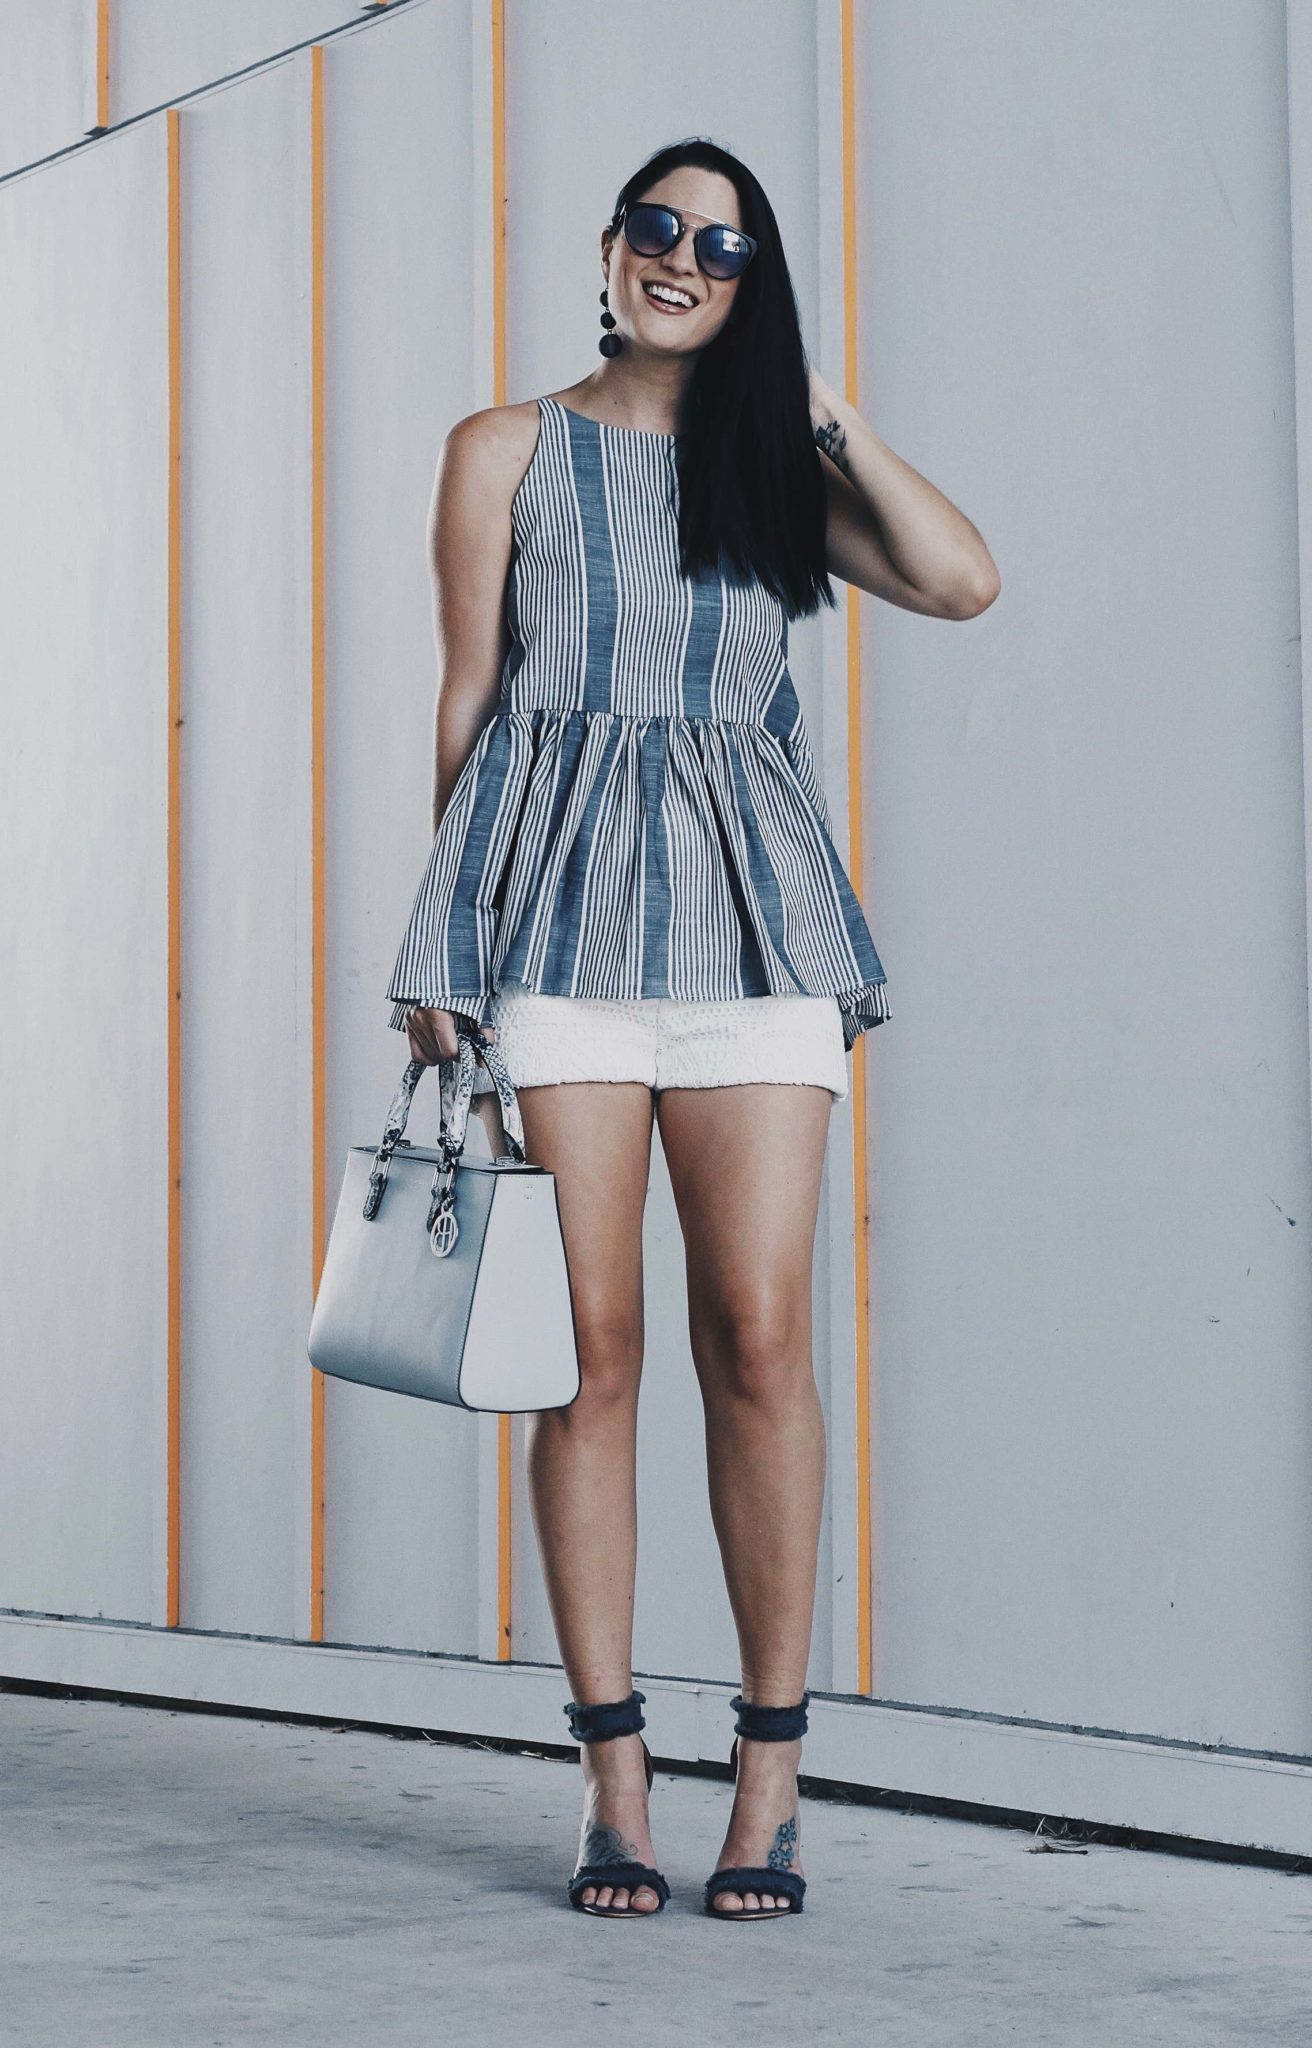 DTKAustin shares her go-to casual summer look for any occasion. Top from Nordstrom, Shorts from Chicwish, handbag from Henri Bendel. Click for more images and info! | how to wear a peplum | peplum top style tips | summer fashion tips | summer outfit ideas | summer style tips | what to wear for summer | warm weather fashion | fashion for summer | style tips for summer | outfit ideas for summer || Dressed to Kill